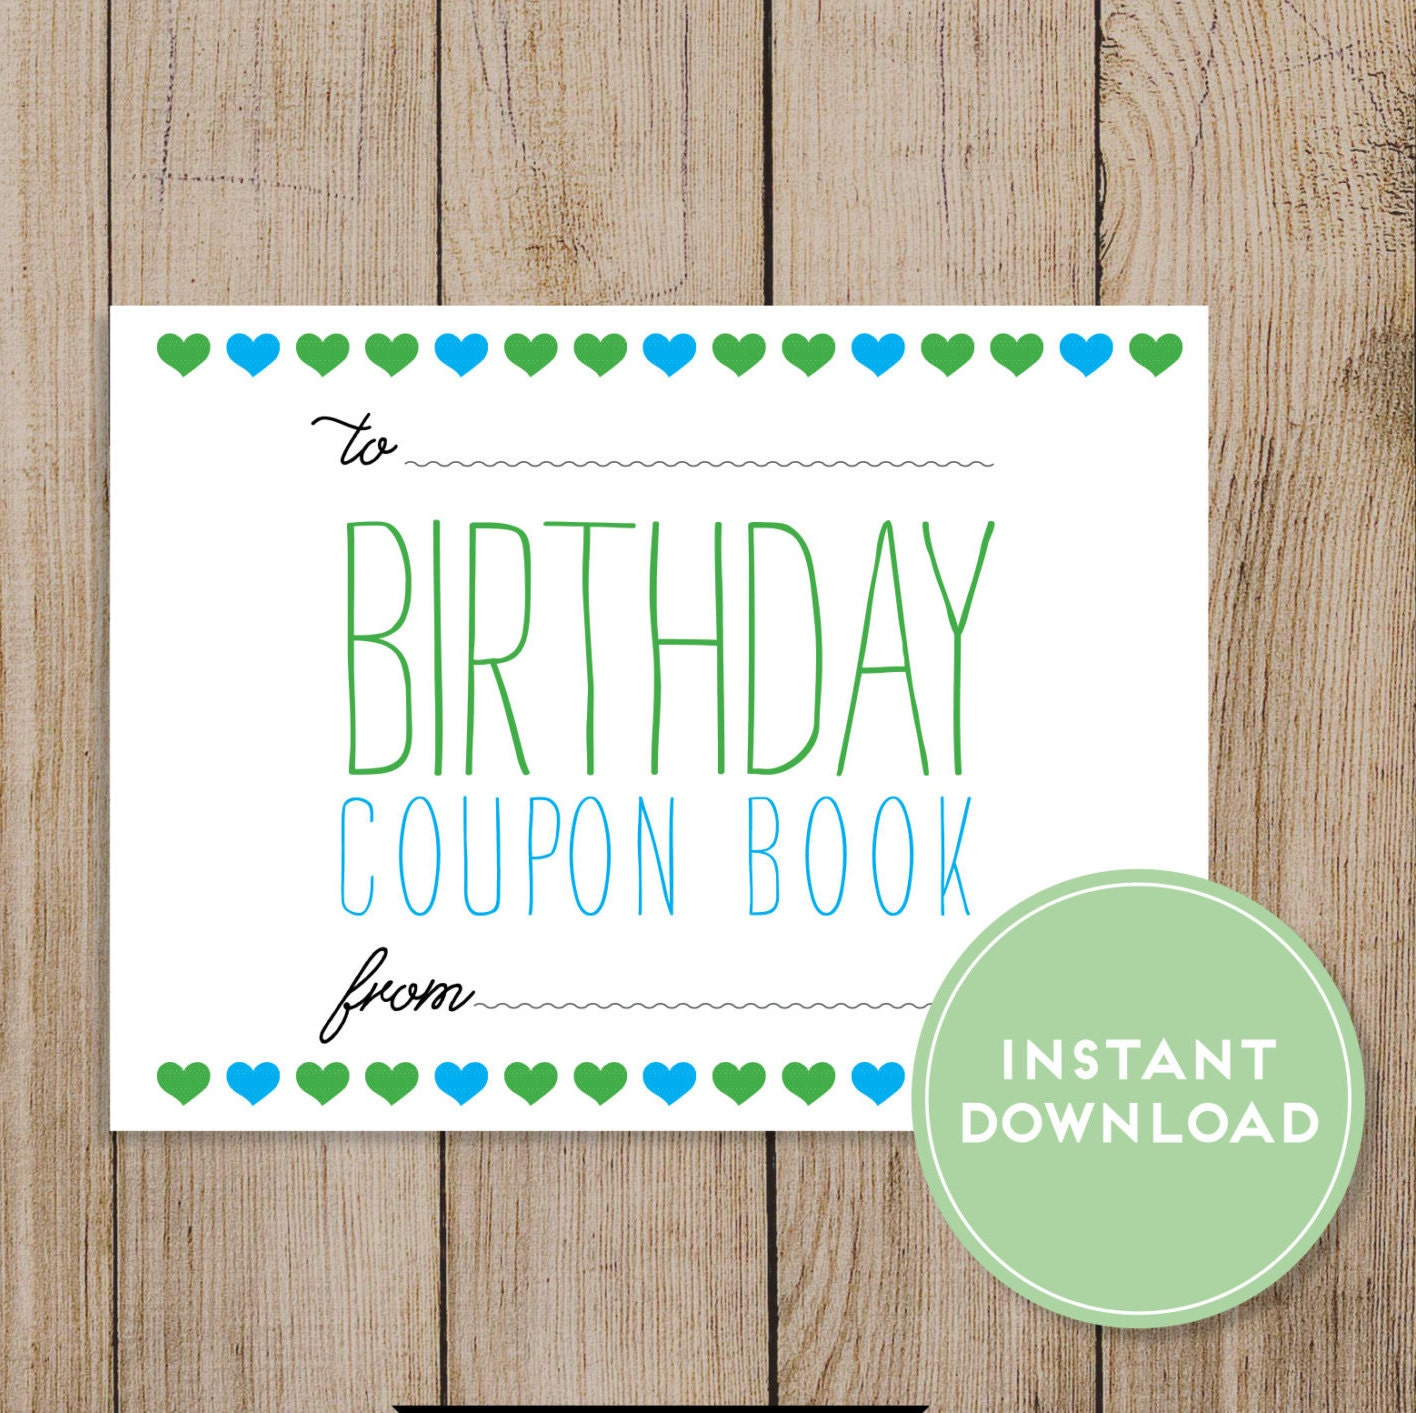 coupon book for boyfriend template - Romeo.landinez.co